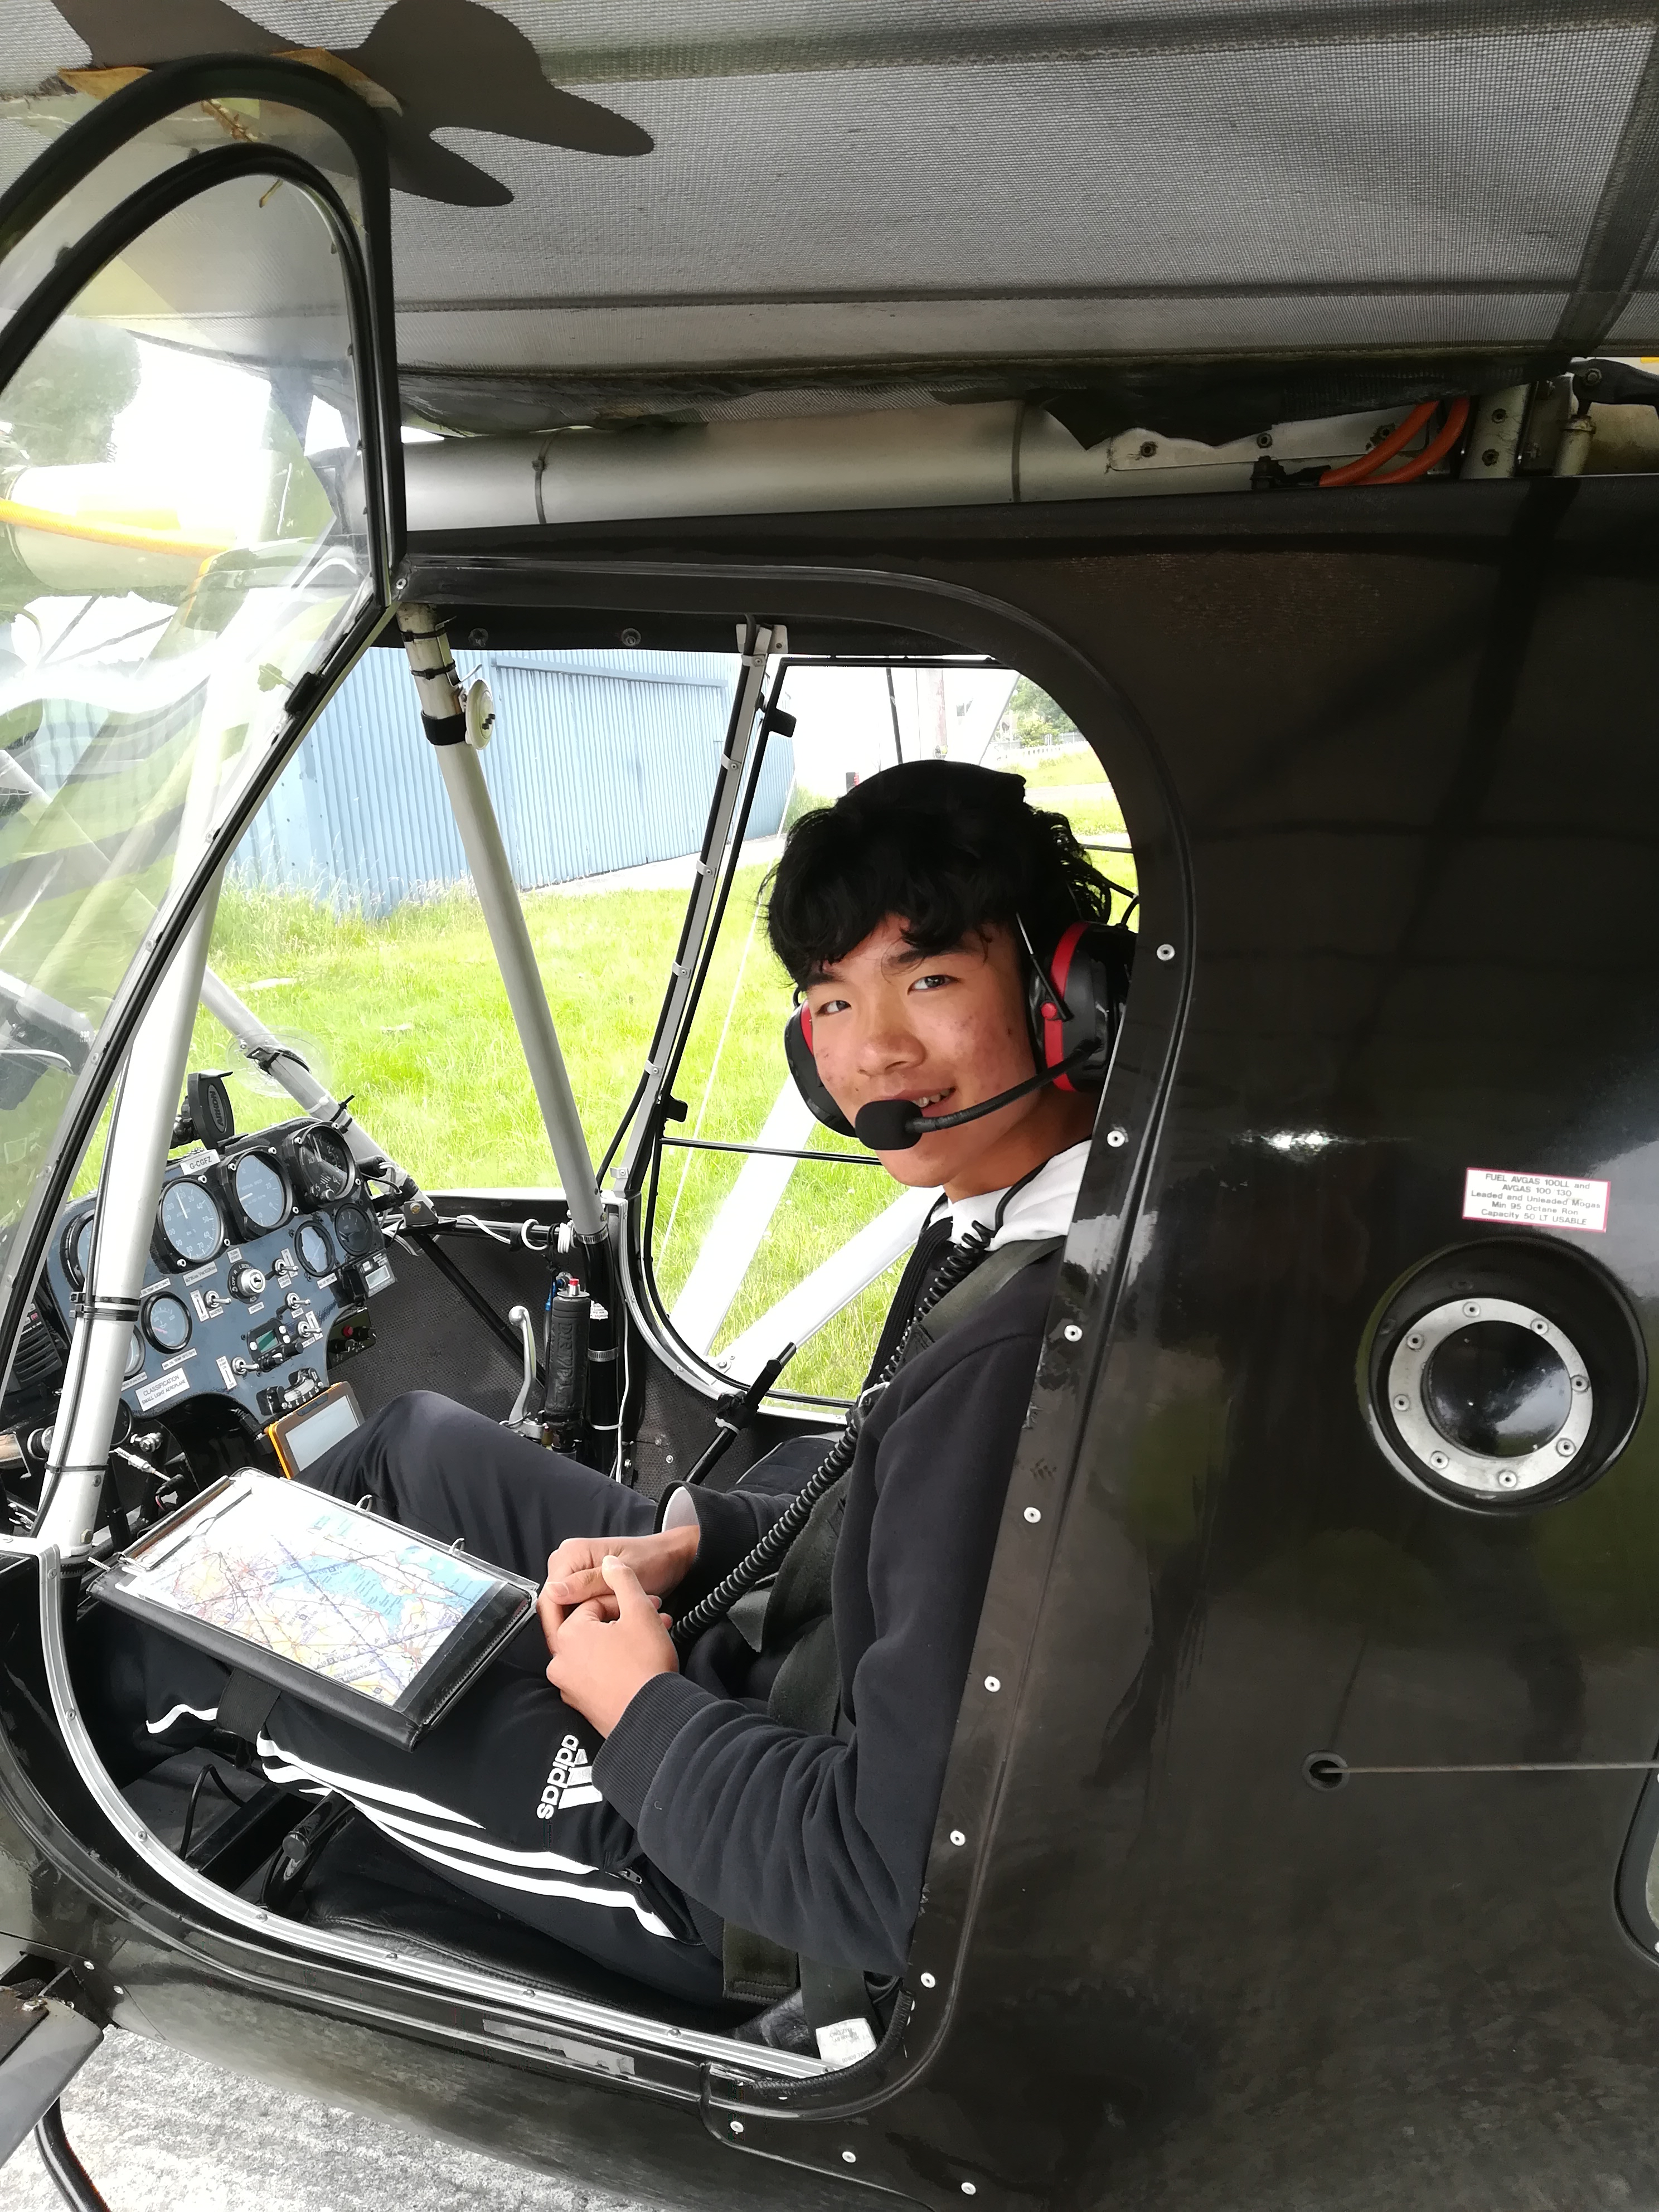 First Solo flight for 16 year old.